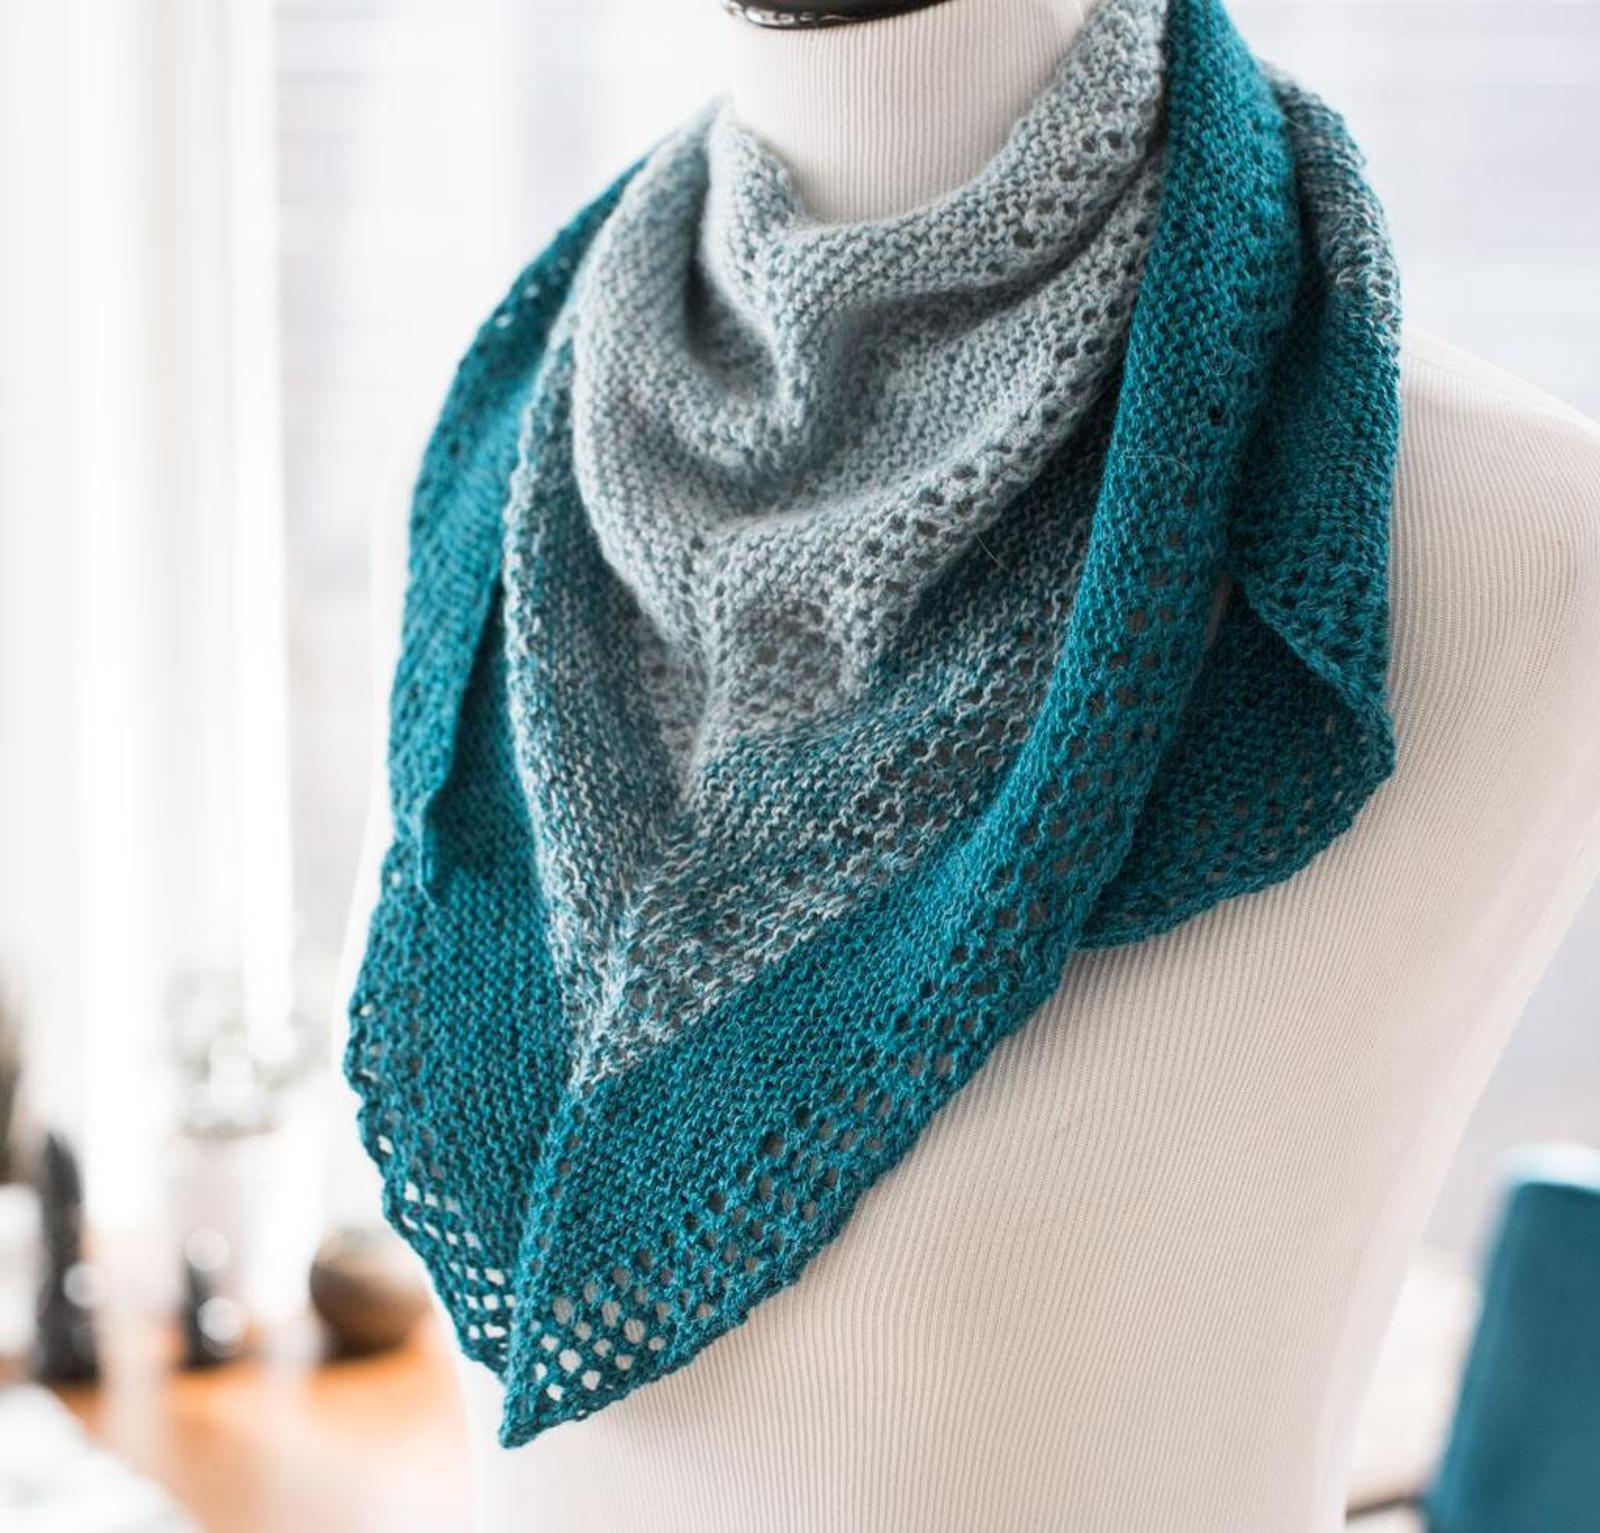 Lacy Shades Shawl Knitting Kit